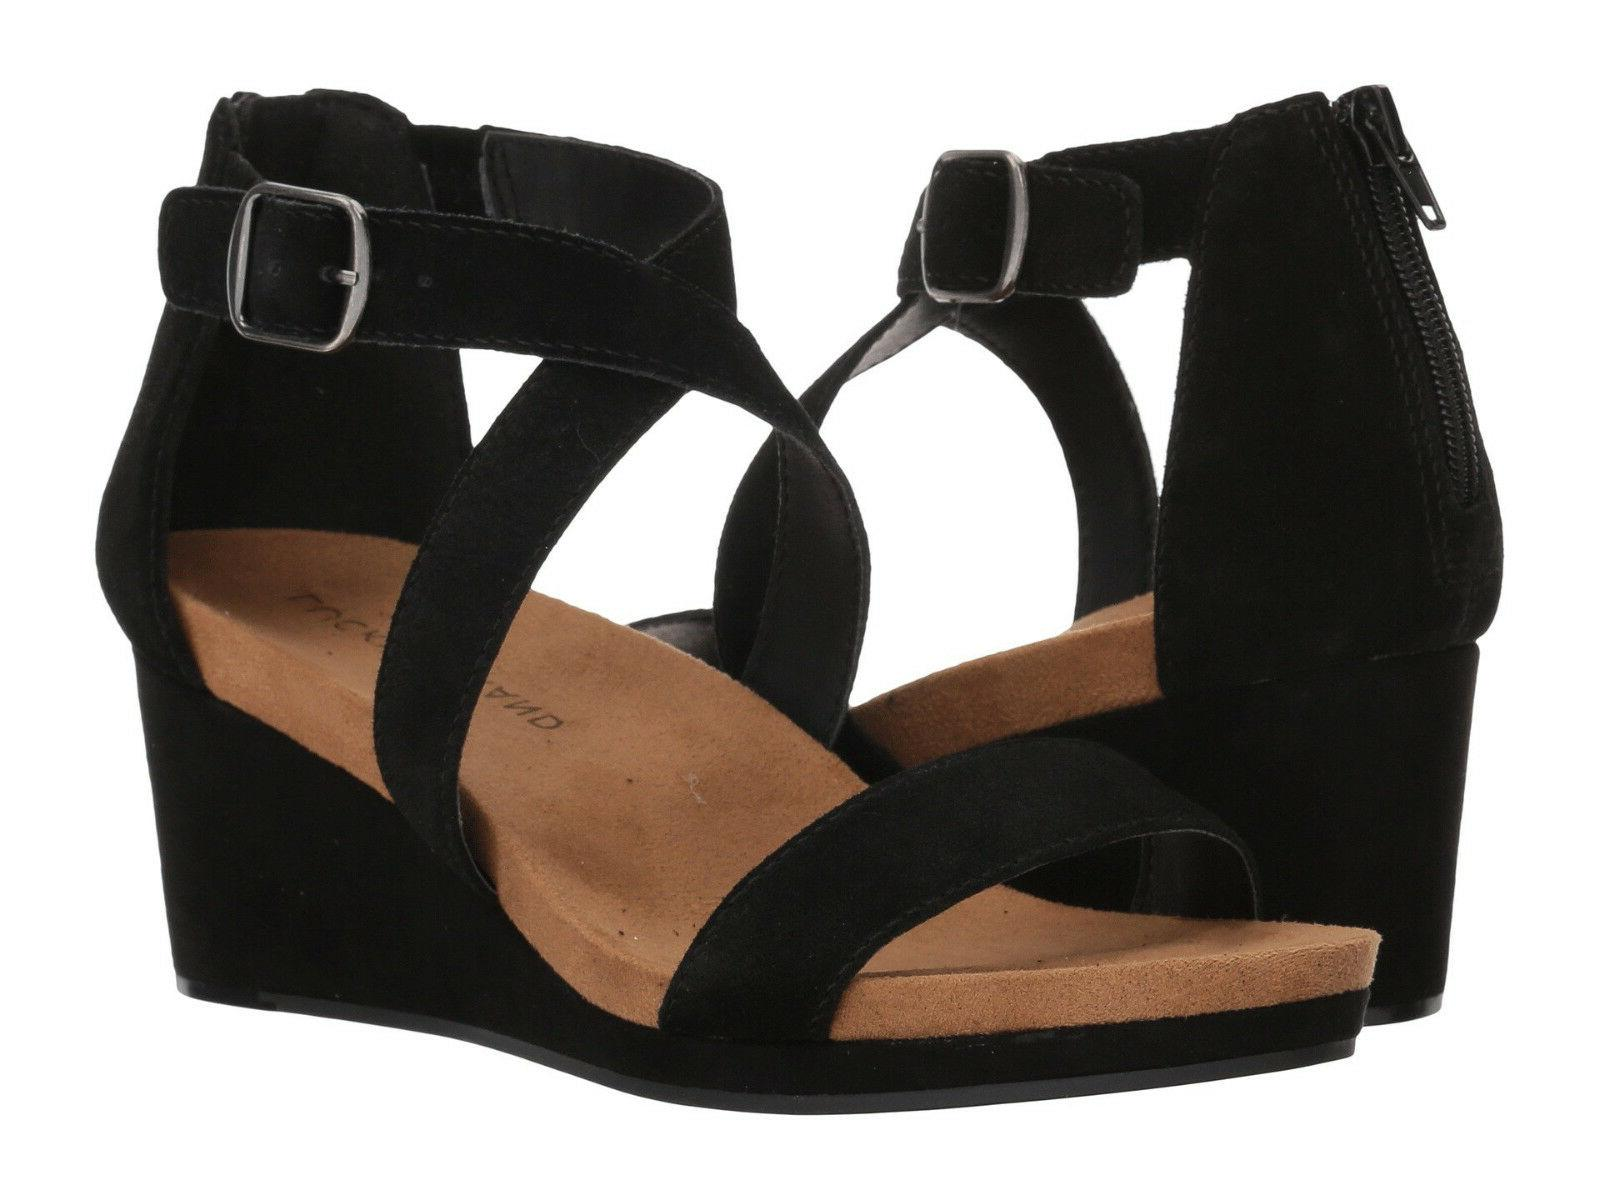 New In Box Womens Lucky Brand KENADEE Black Oiled Suede Wedg